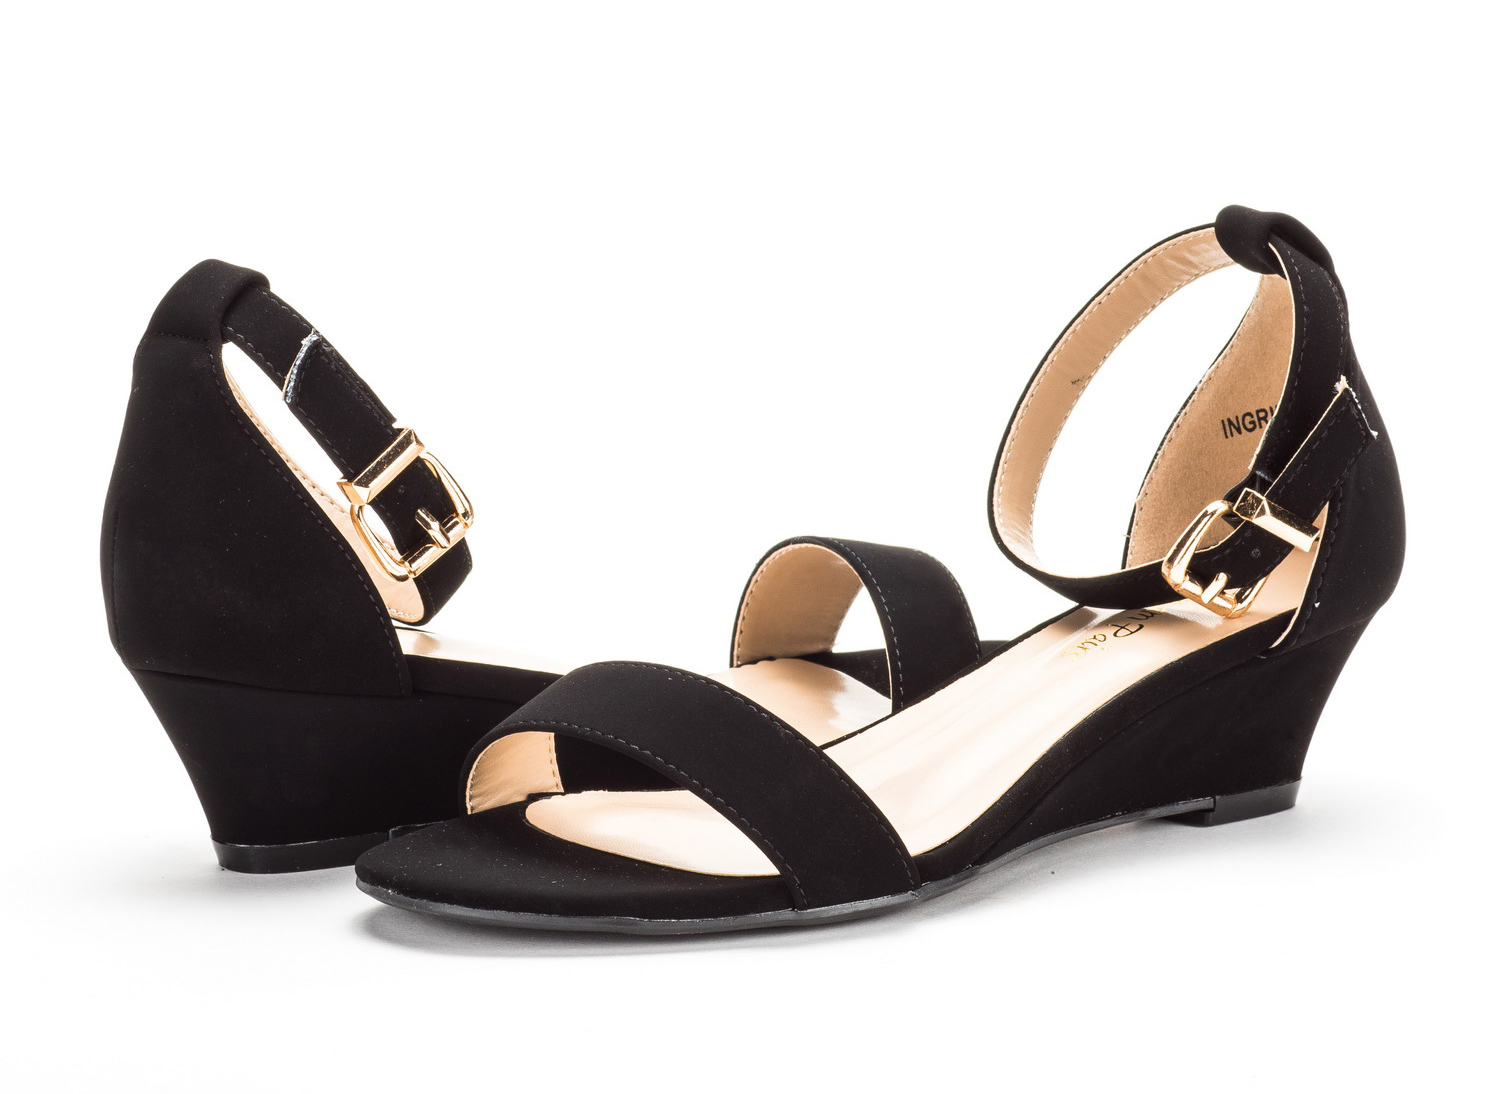 ccd24f08838 INGRID Women Summer Open Toe Ankle Strap Buckle Thong Design Low ...